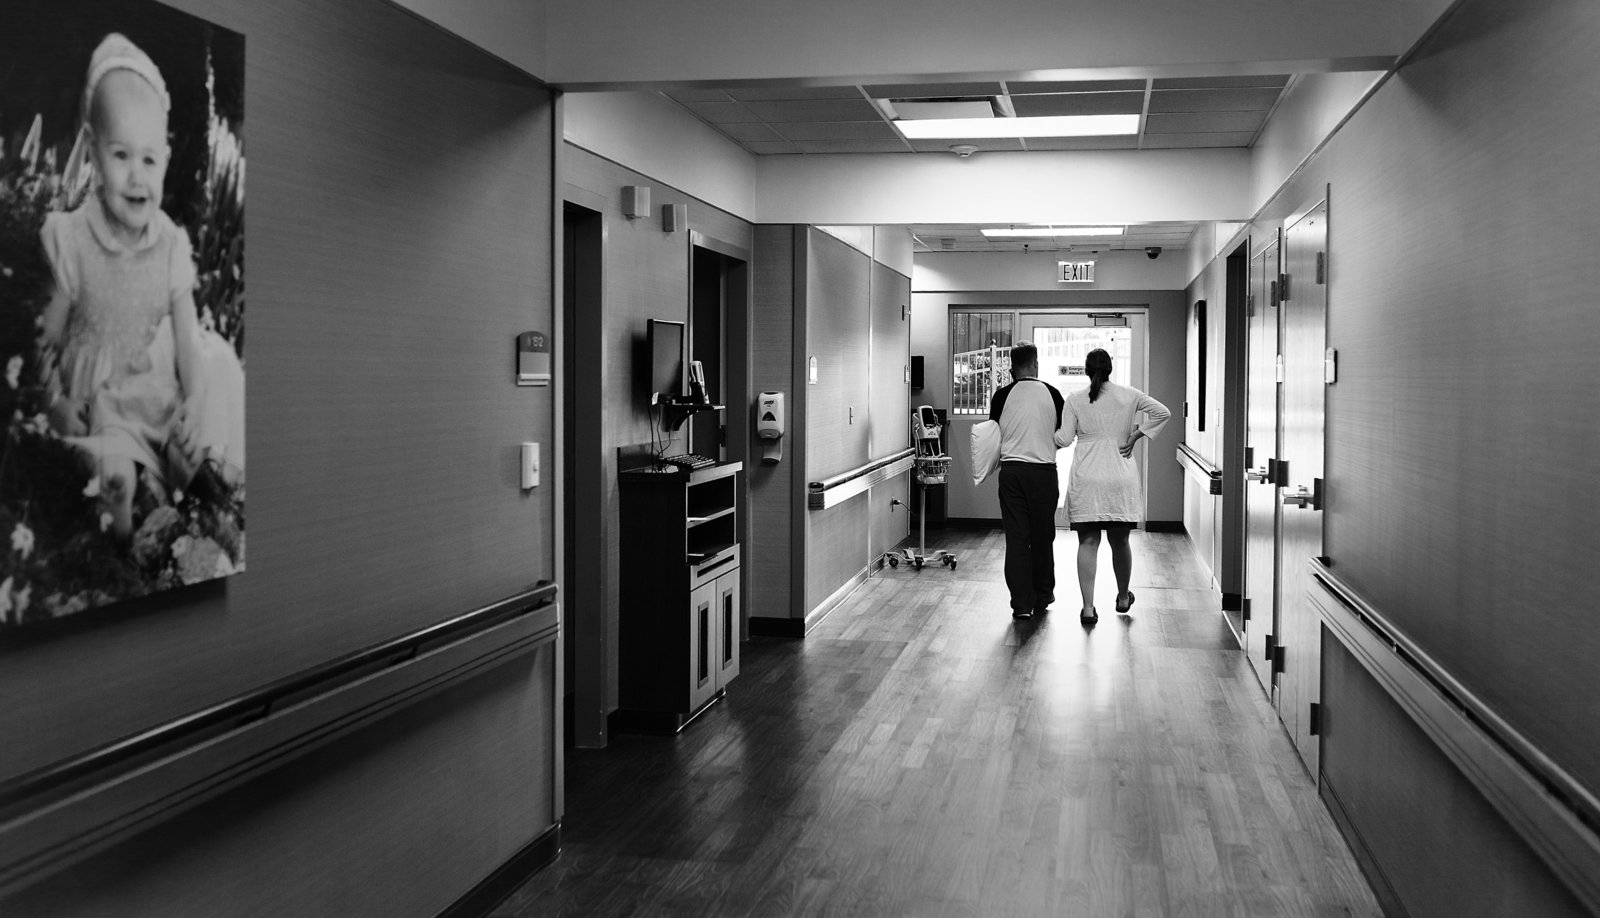 charlotte birth photographer jamie lucido documents mother and father walking in the hallways of a hospital during labor